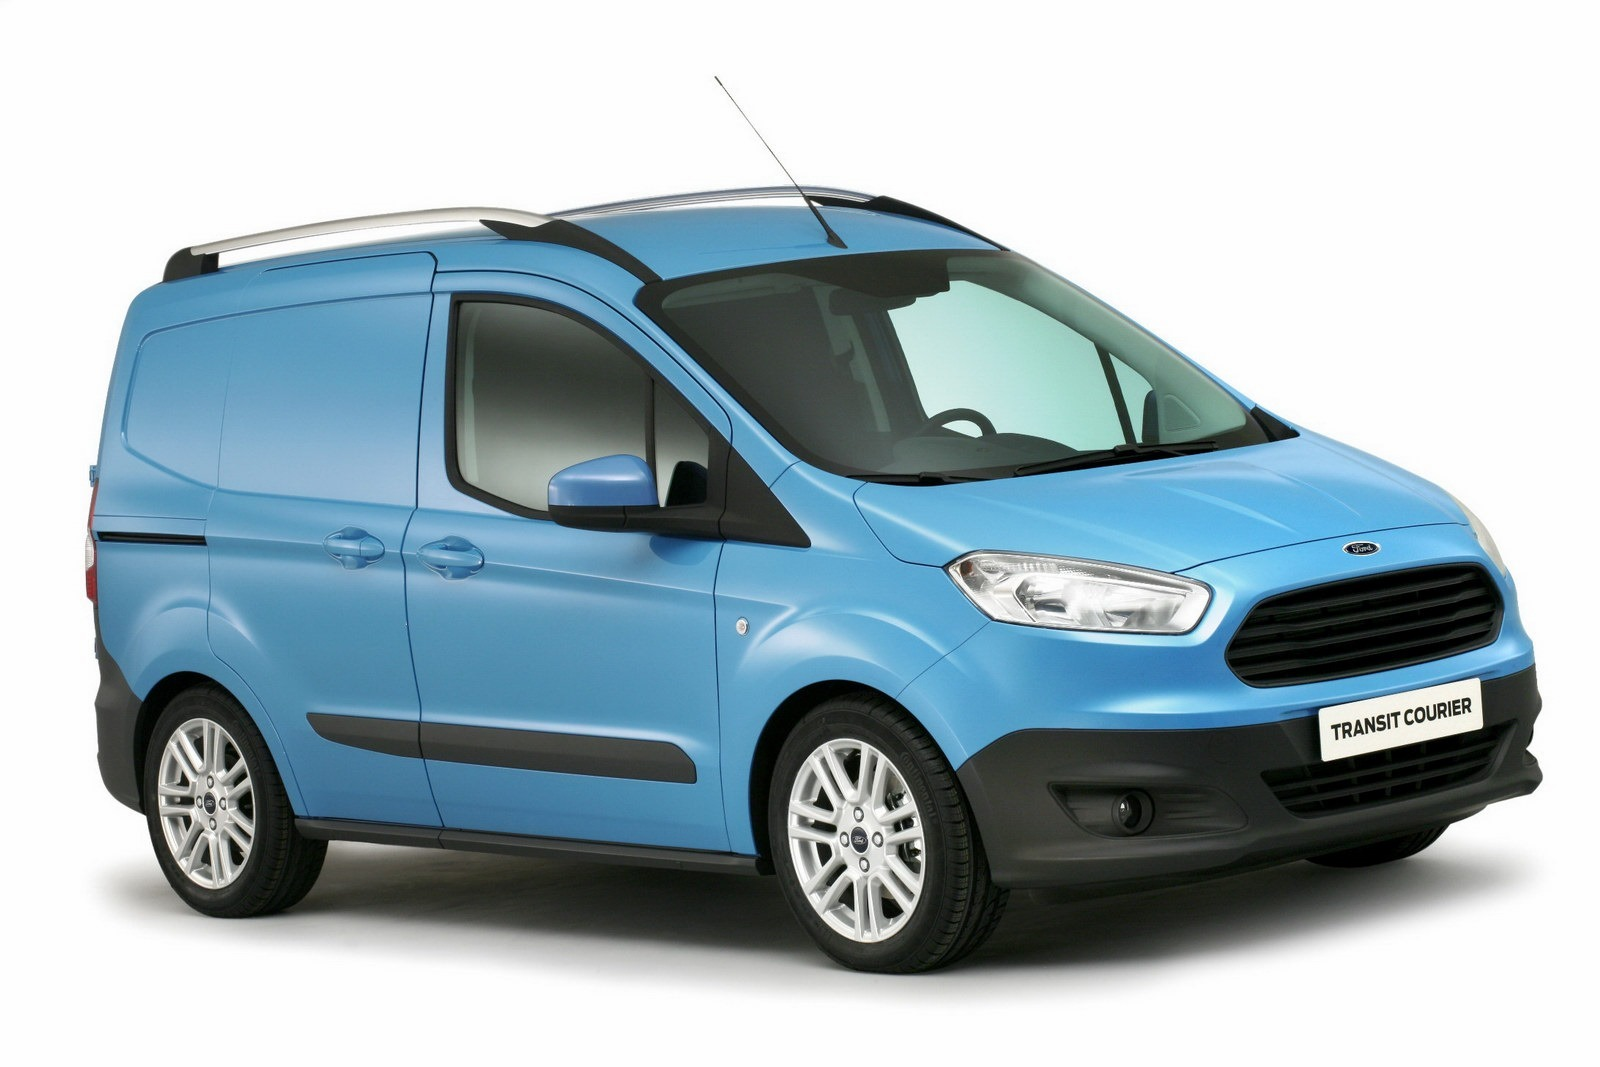 Etiketler Ford Tourneo Courier Ford Transit Courier